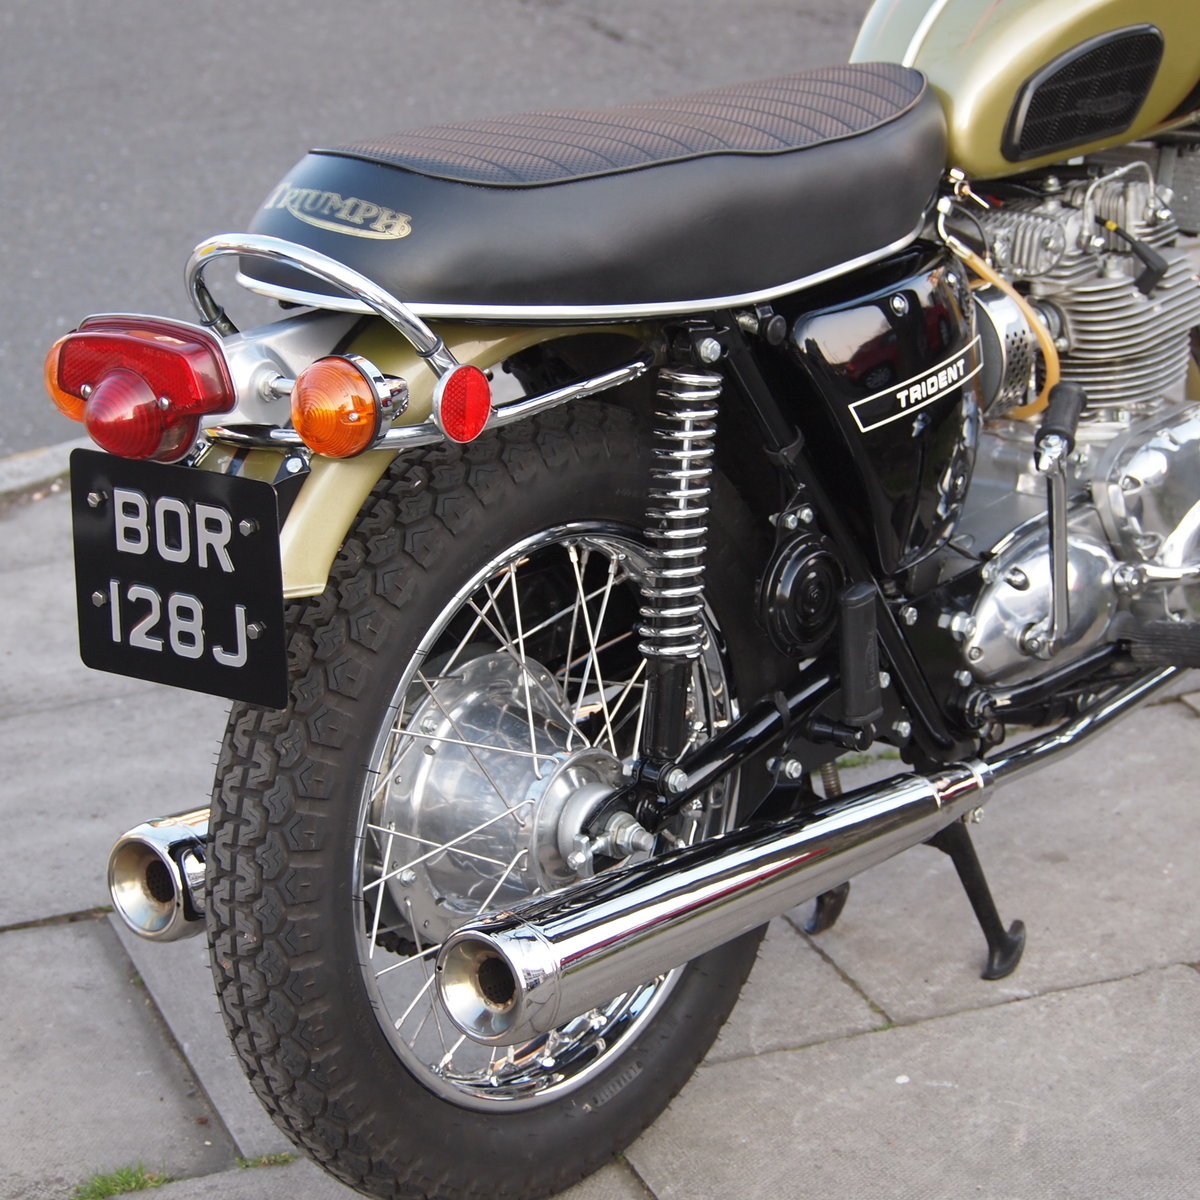 1971 T150T Trident, UK Bike, Concours d'elegance Condition. SOLD (picture 3 of 6)